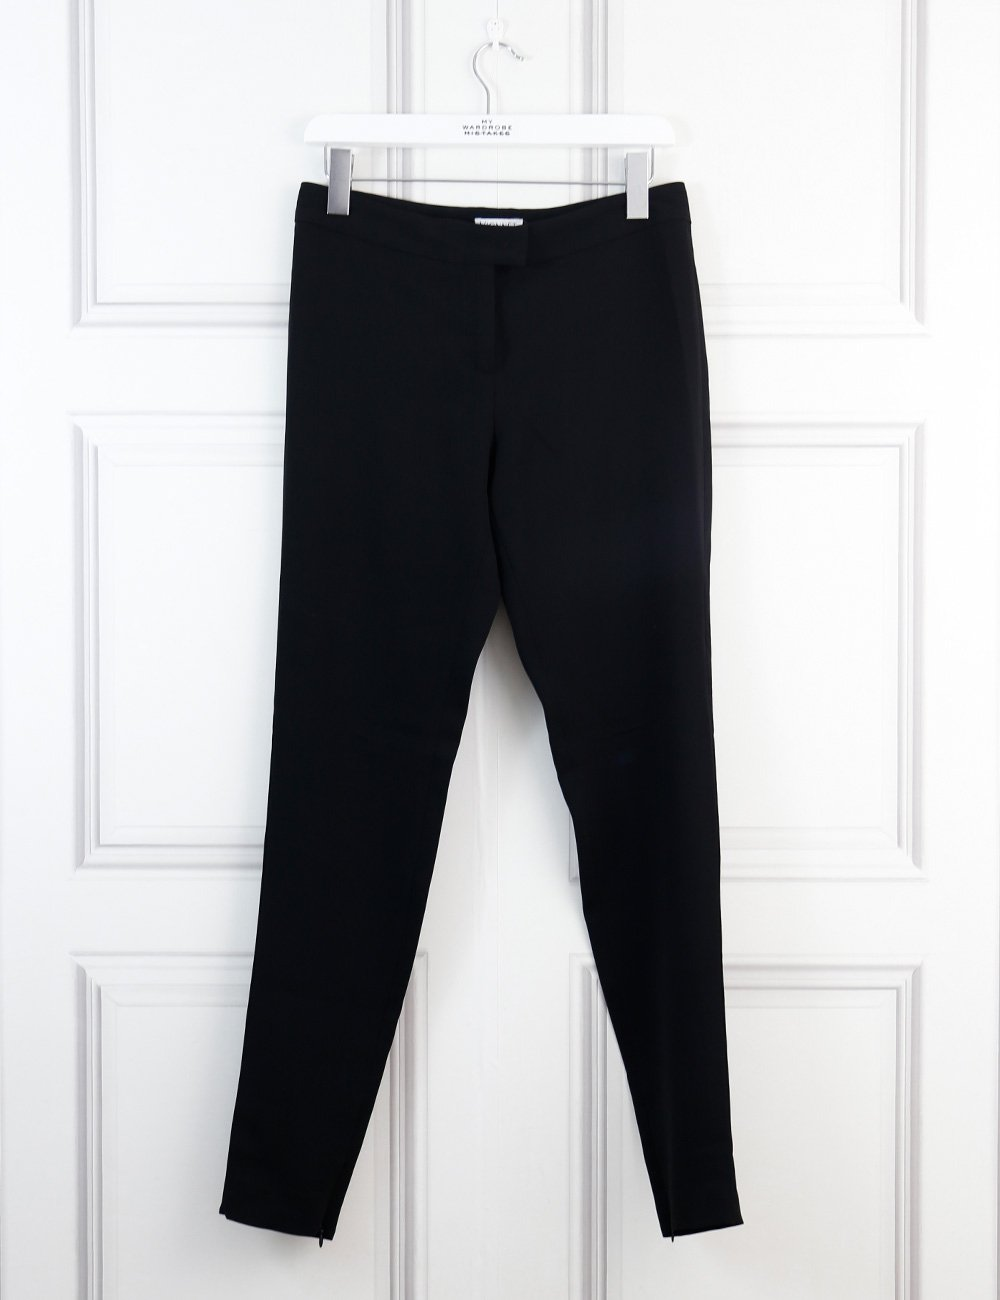 VIONNET CLOTHING 8UK-40IT-36FR / Black VIONNET Classic trousers with ankle zips